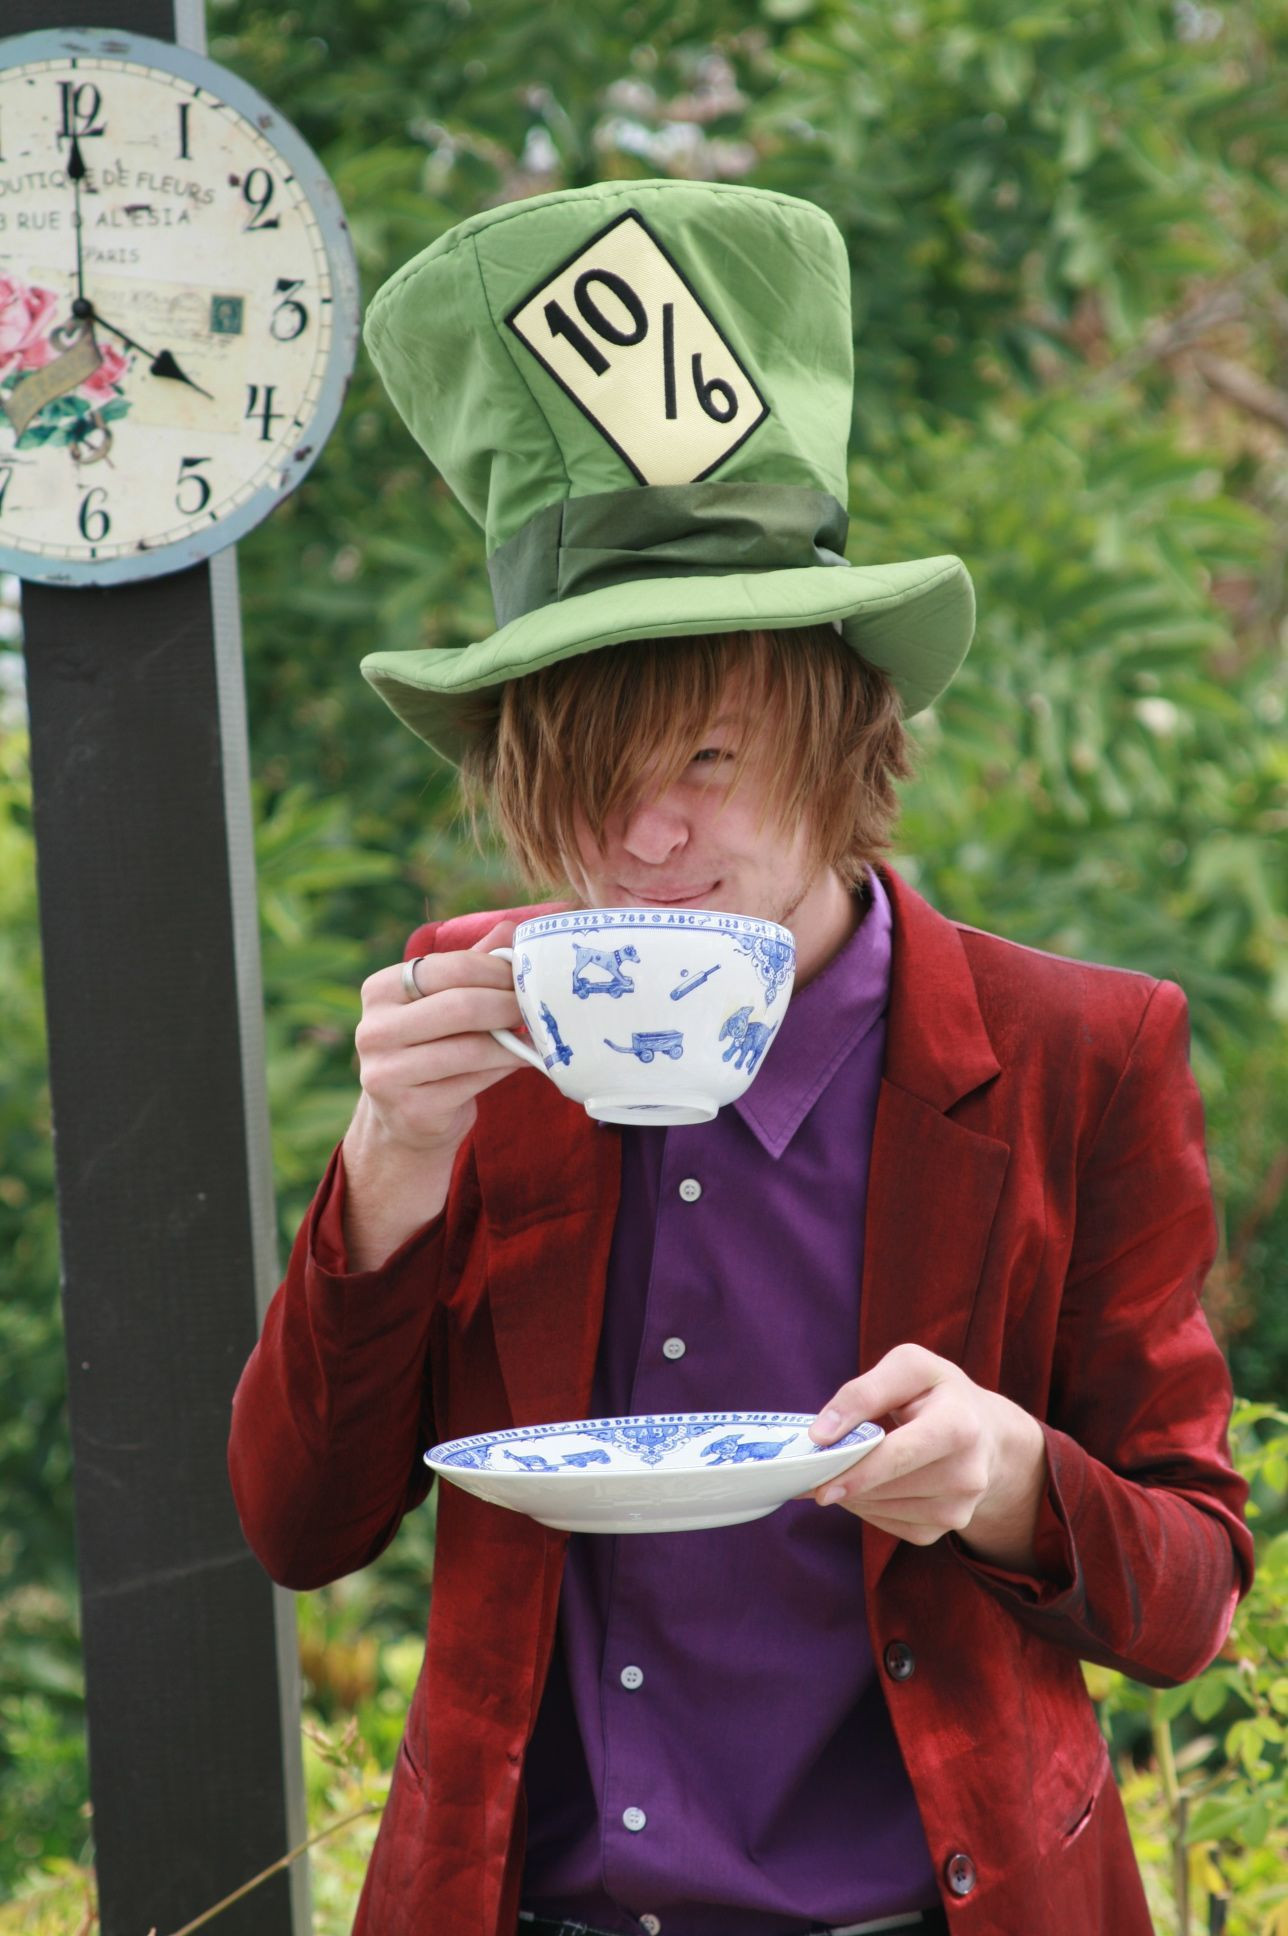 Mad Hatter Tea Party Costume Ideas  MaD HaTTeR Easter Tea Party With images